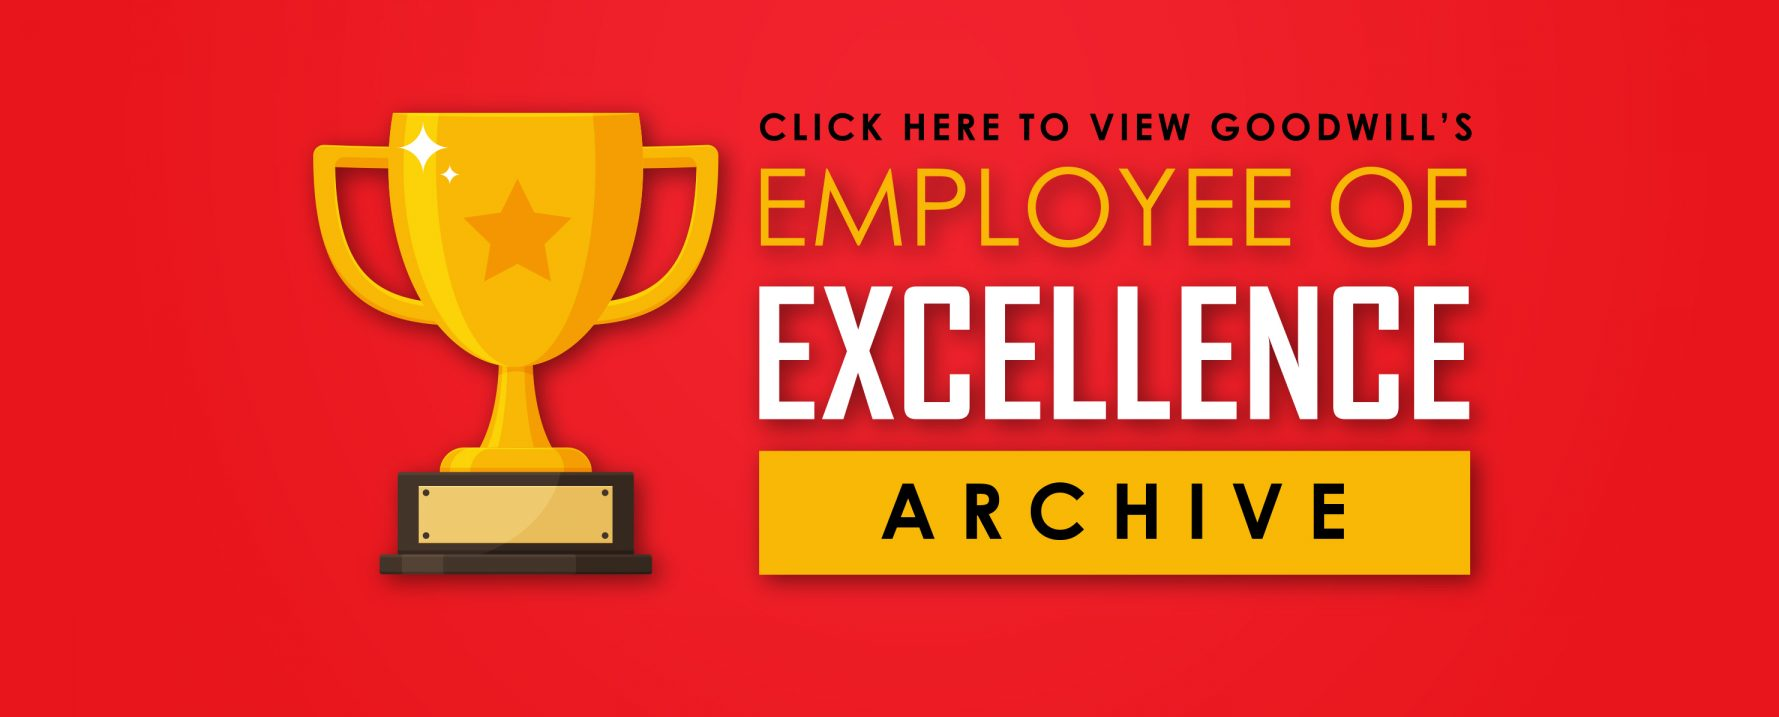 Employee of Excellence Archive